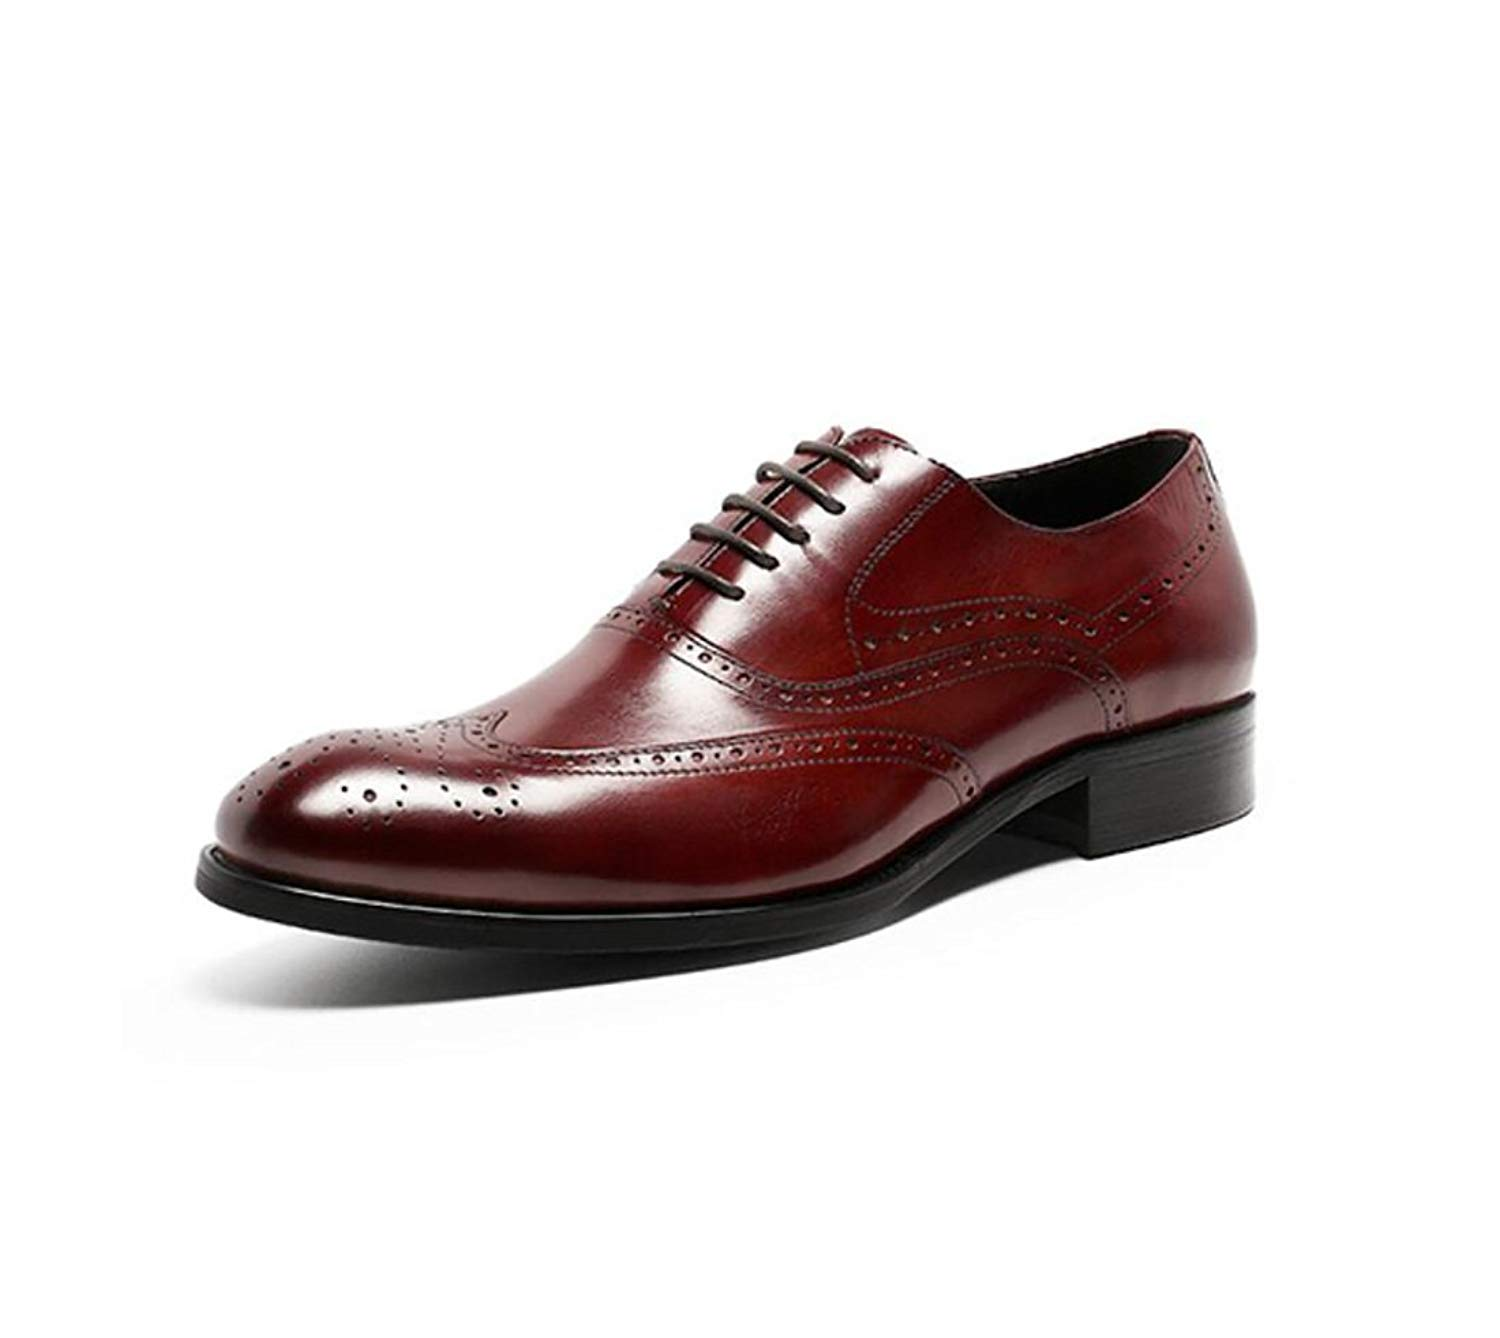 277d1df56103 Cheap Office Shoes Mens, find Office Shoes Mens deals on line at ...